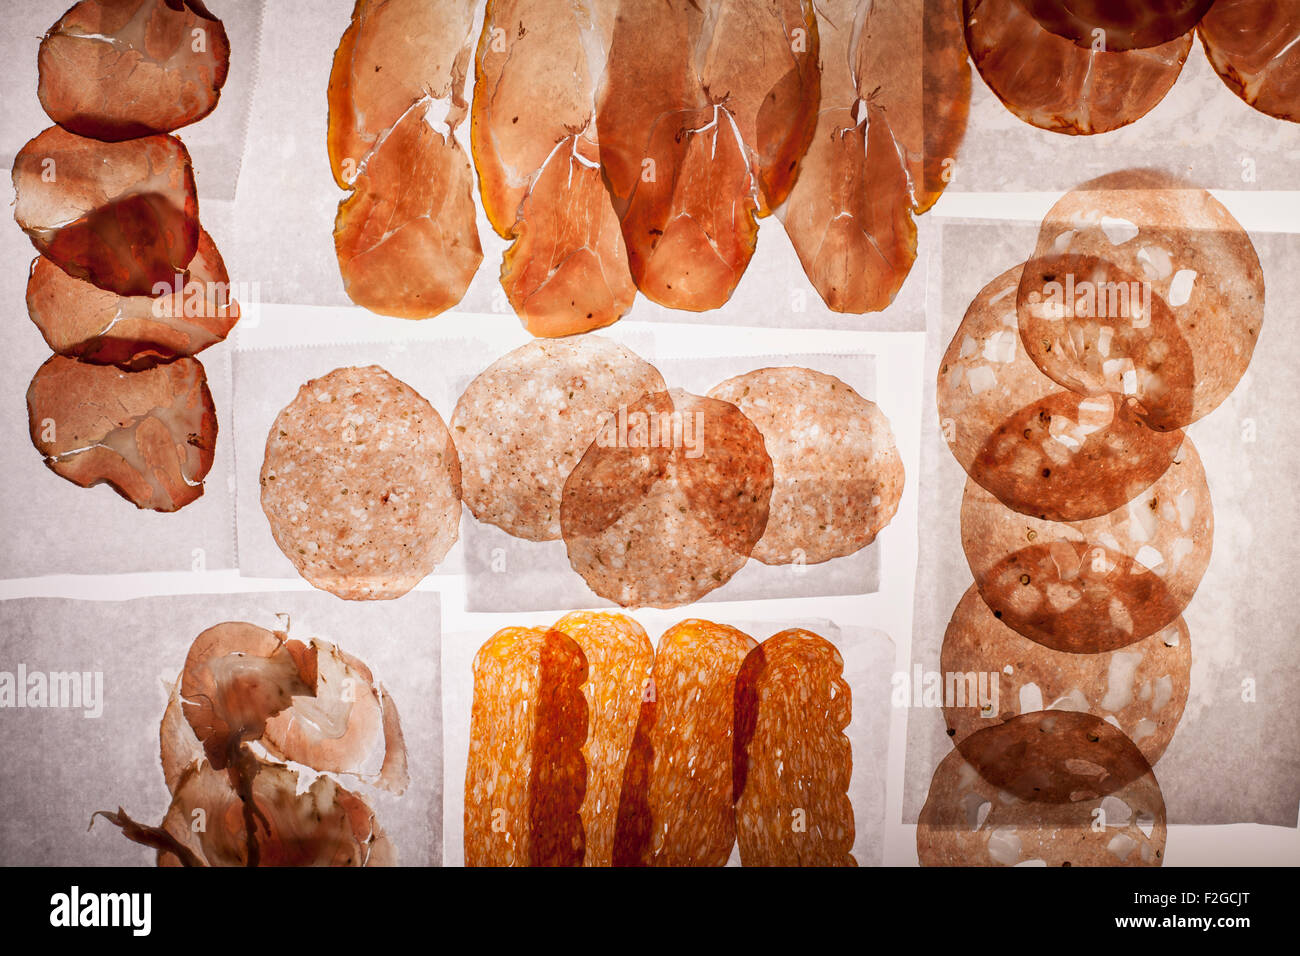 Translucent slices of various salami and prosciutto on white deli paper back lit on light table Stock Photo